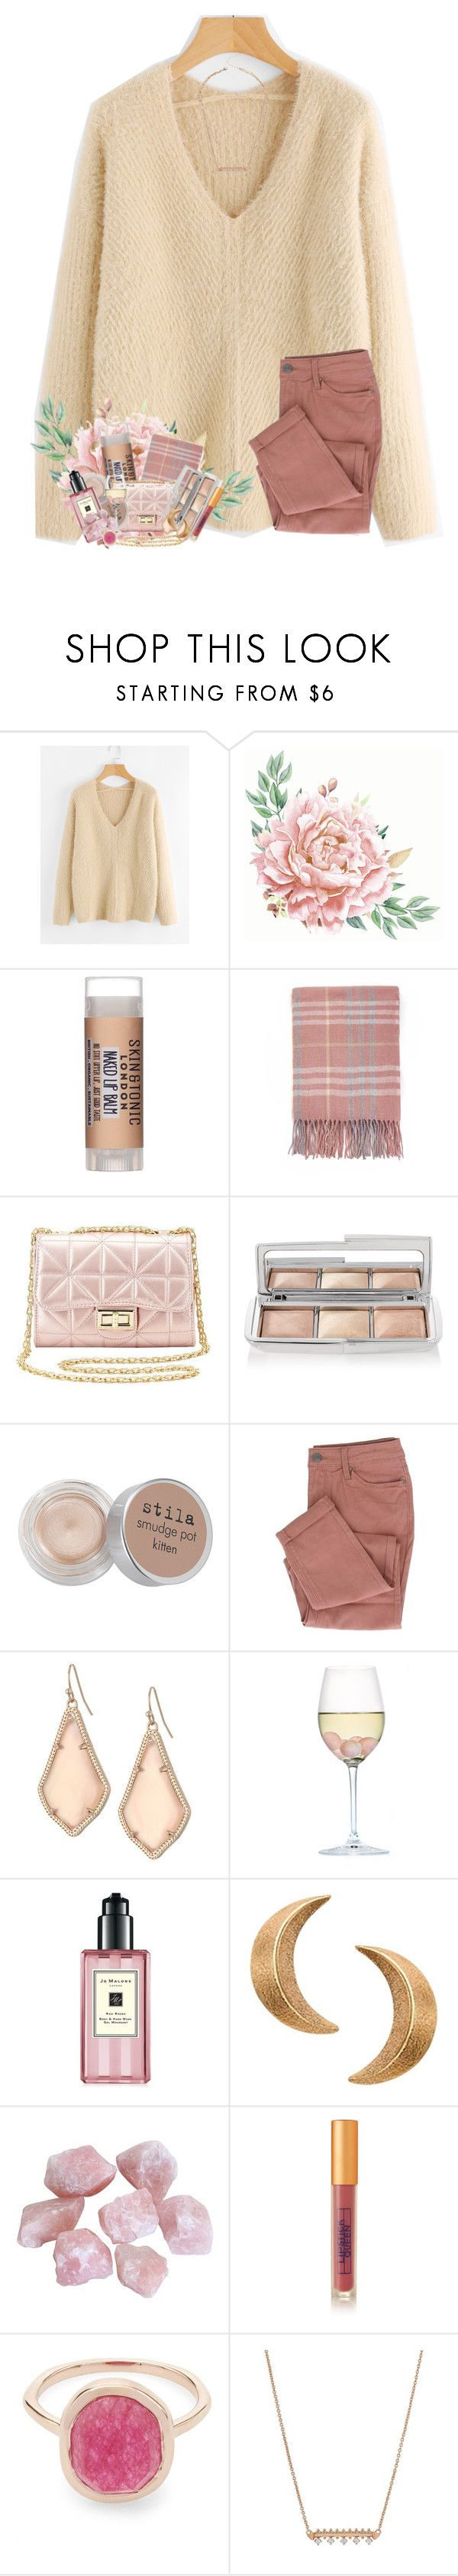 """time will tell"" by livnewell ❤ liked on Polyvore featuring Skin & Tonic, Charlotte Russe, Hourglass Cosmetics, Stila, Kendra Scott, RabLabs, Jo Malone, London Road, Lipstick Queen and Liberty"